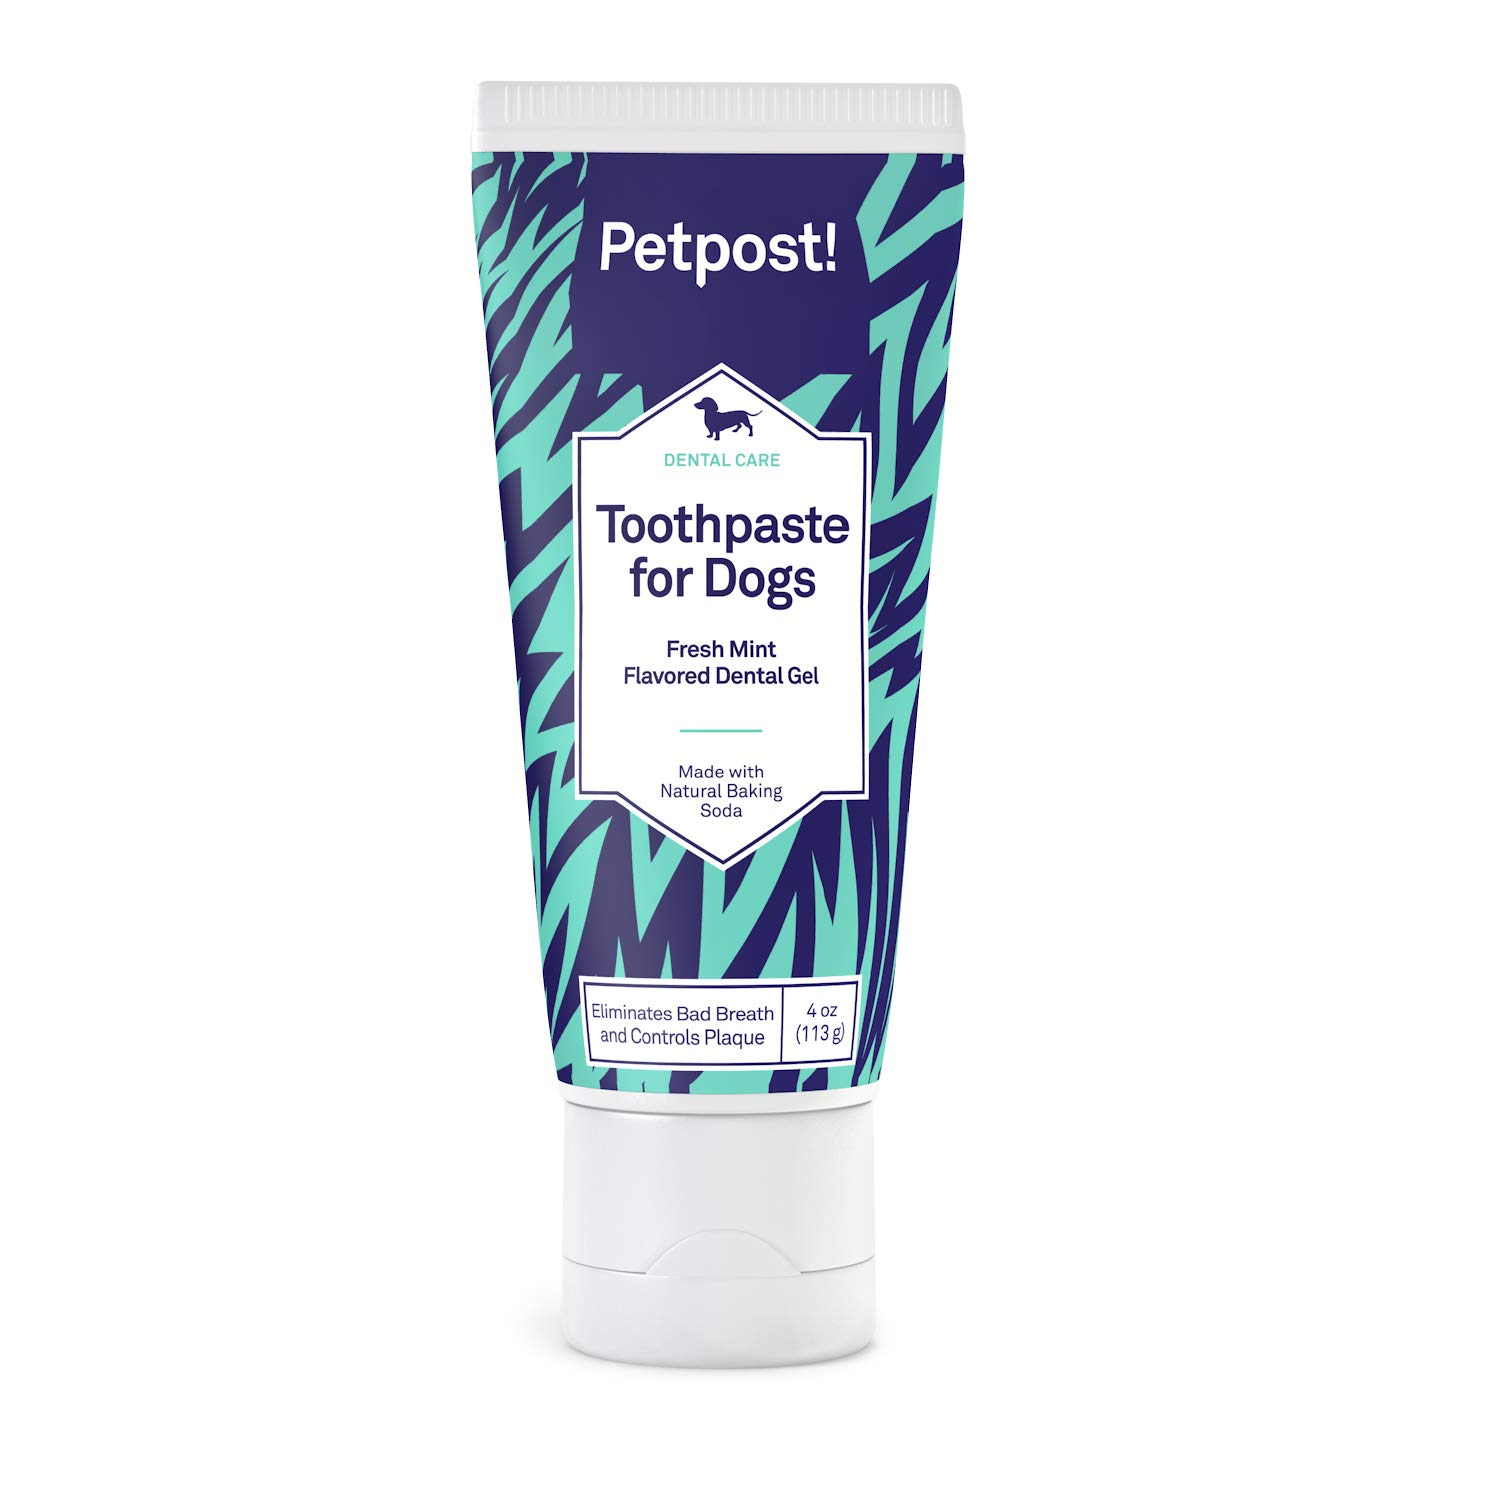 Petpost | Toothpaste for Dogs - Coconut Oil and Baking Soda Based Dental Gel That Naturally Kills Bad Breath - Plaque and Tooth Decay Gone - Mint Flavor (Mint Flavor, 4 oz.) by Petpost